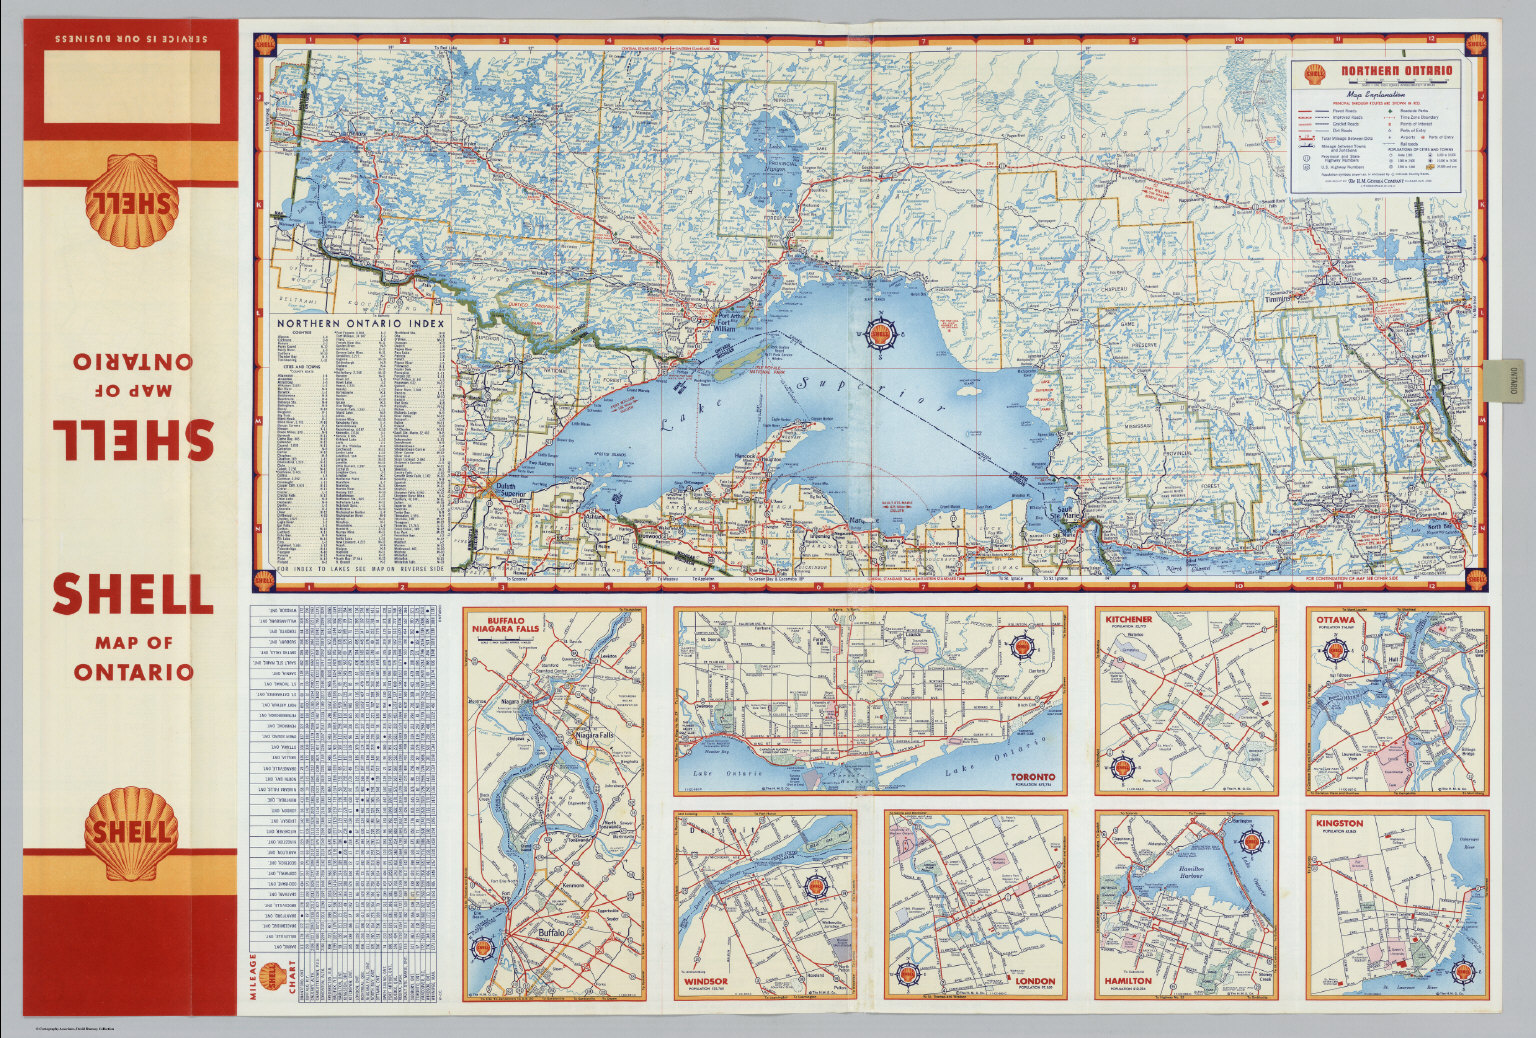 Hamilton Ontario Canada Map.Various Maps Of Cities And Districts In Ontario Canada David